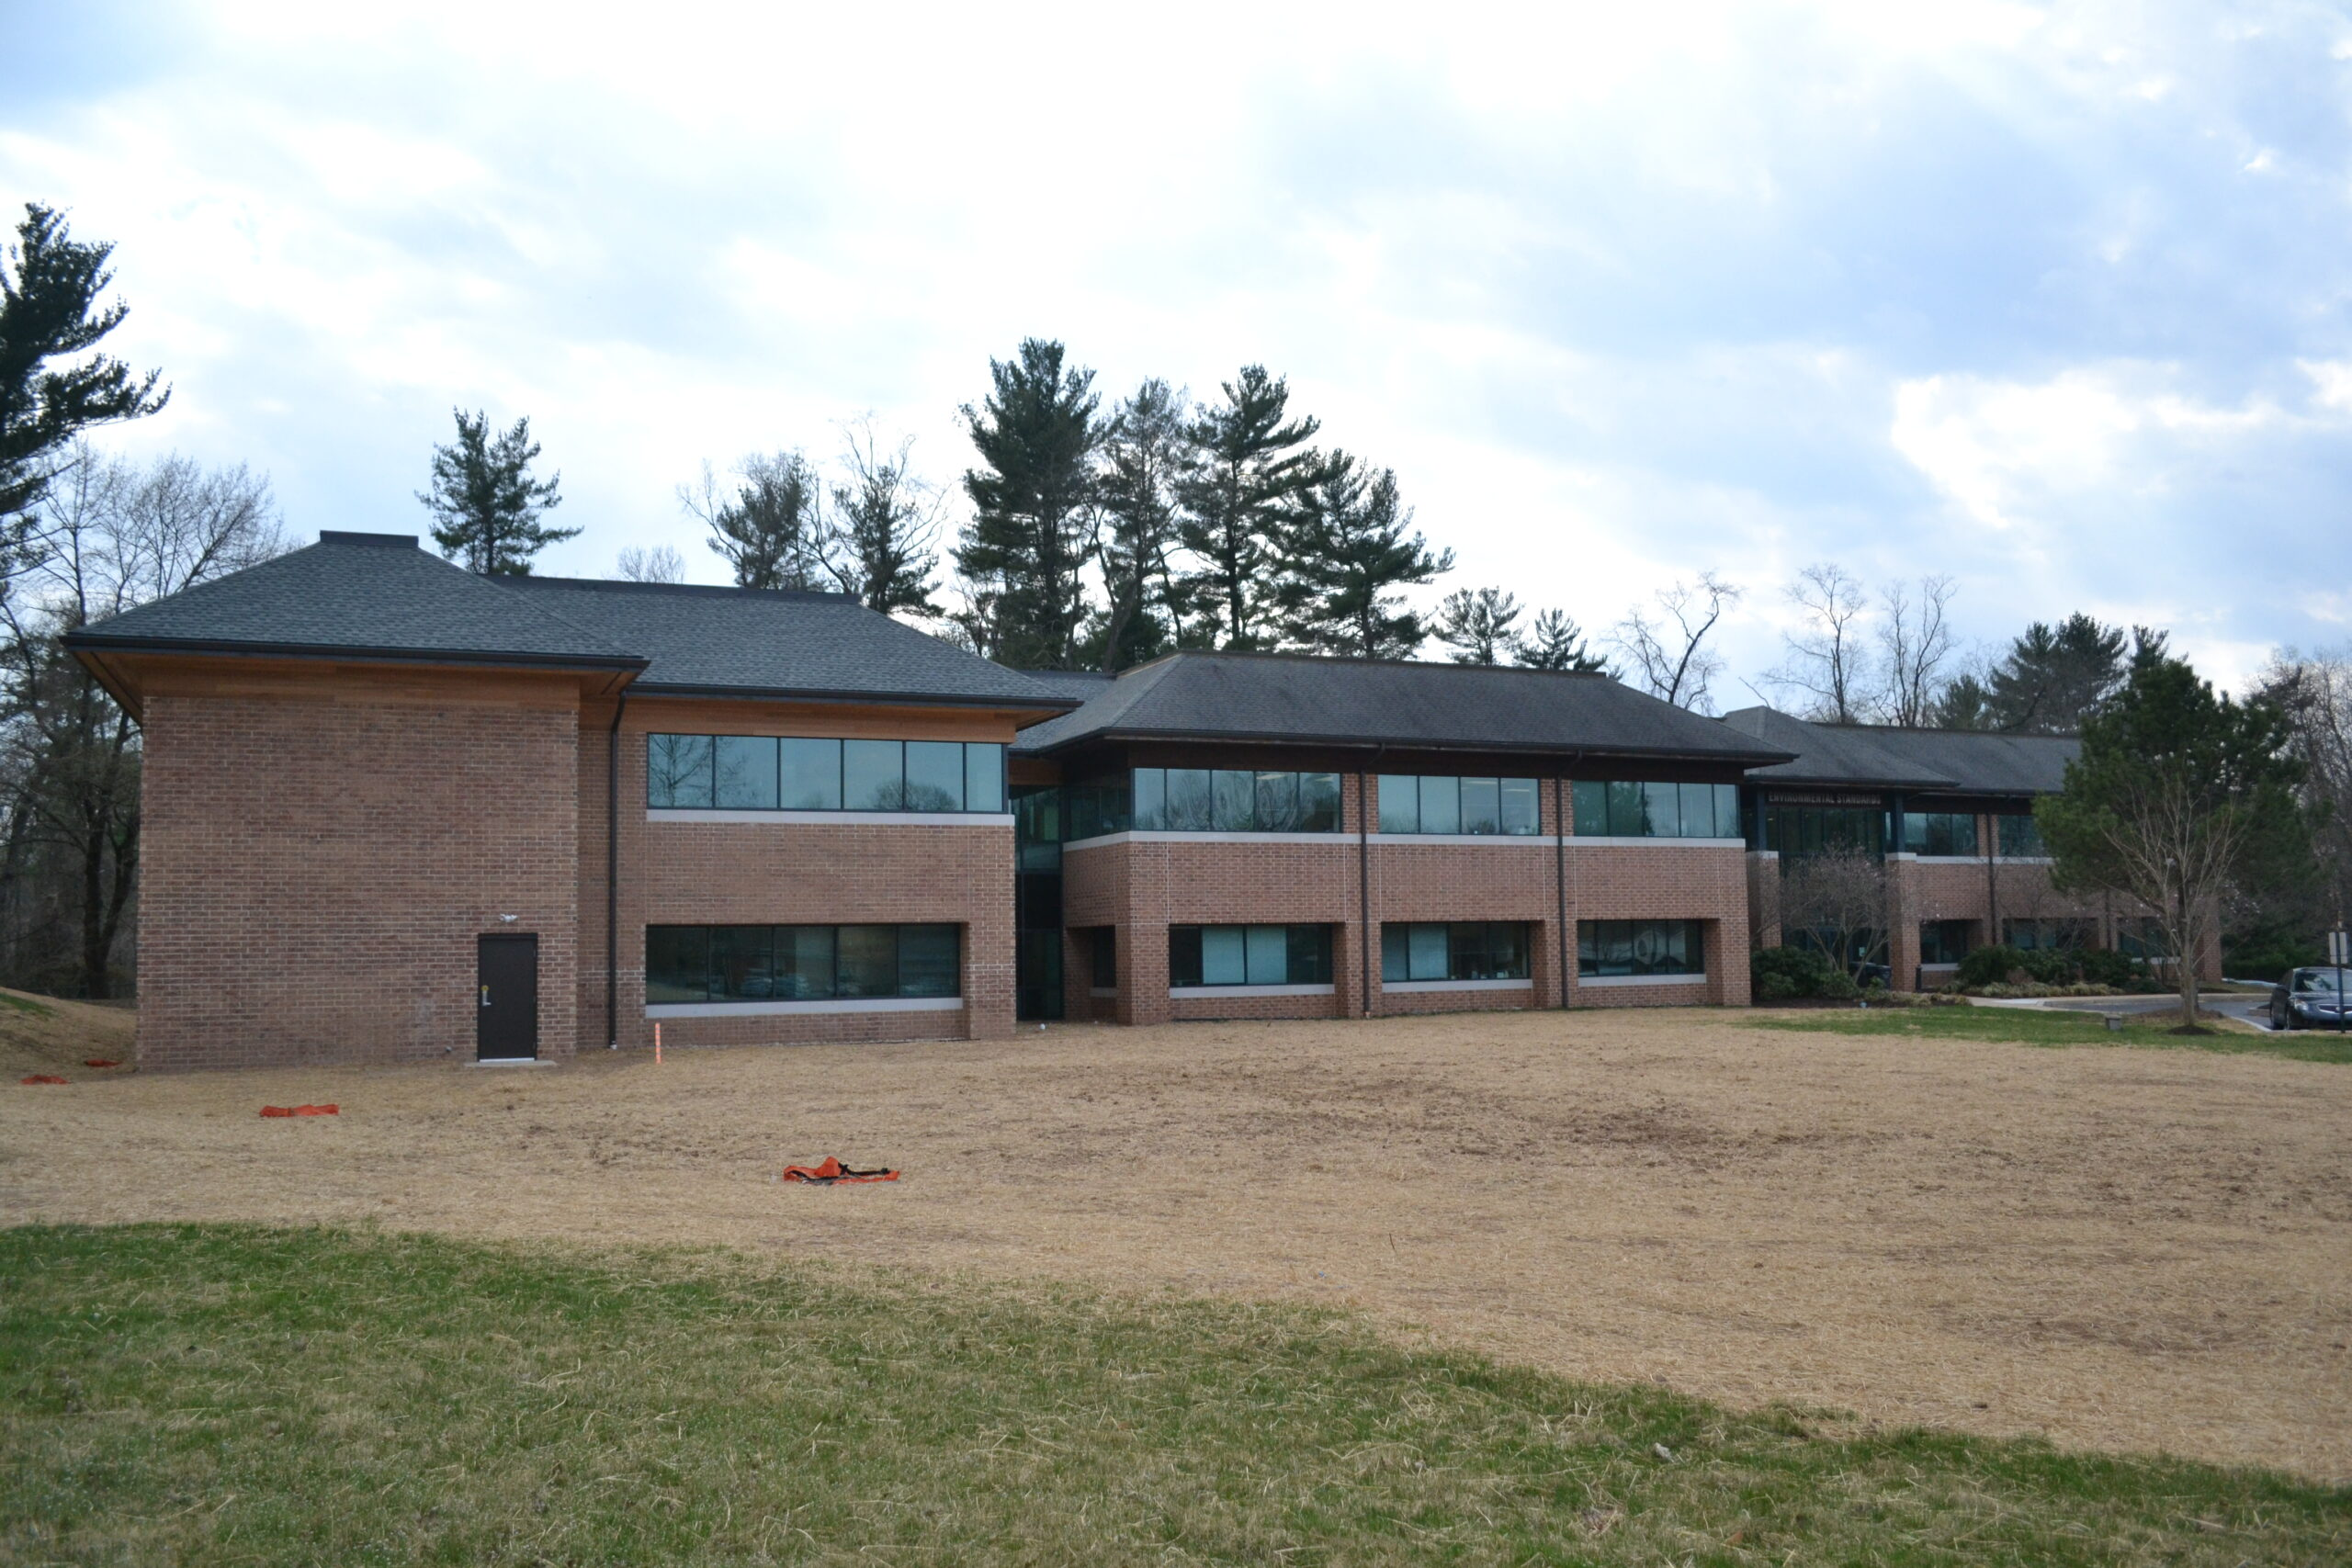 Environmental Standards Inc – Valley Forge, PA